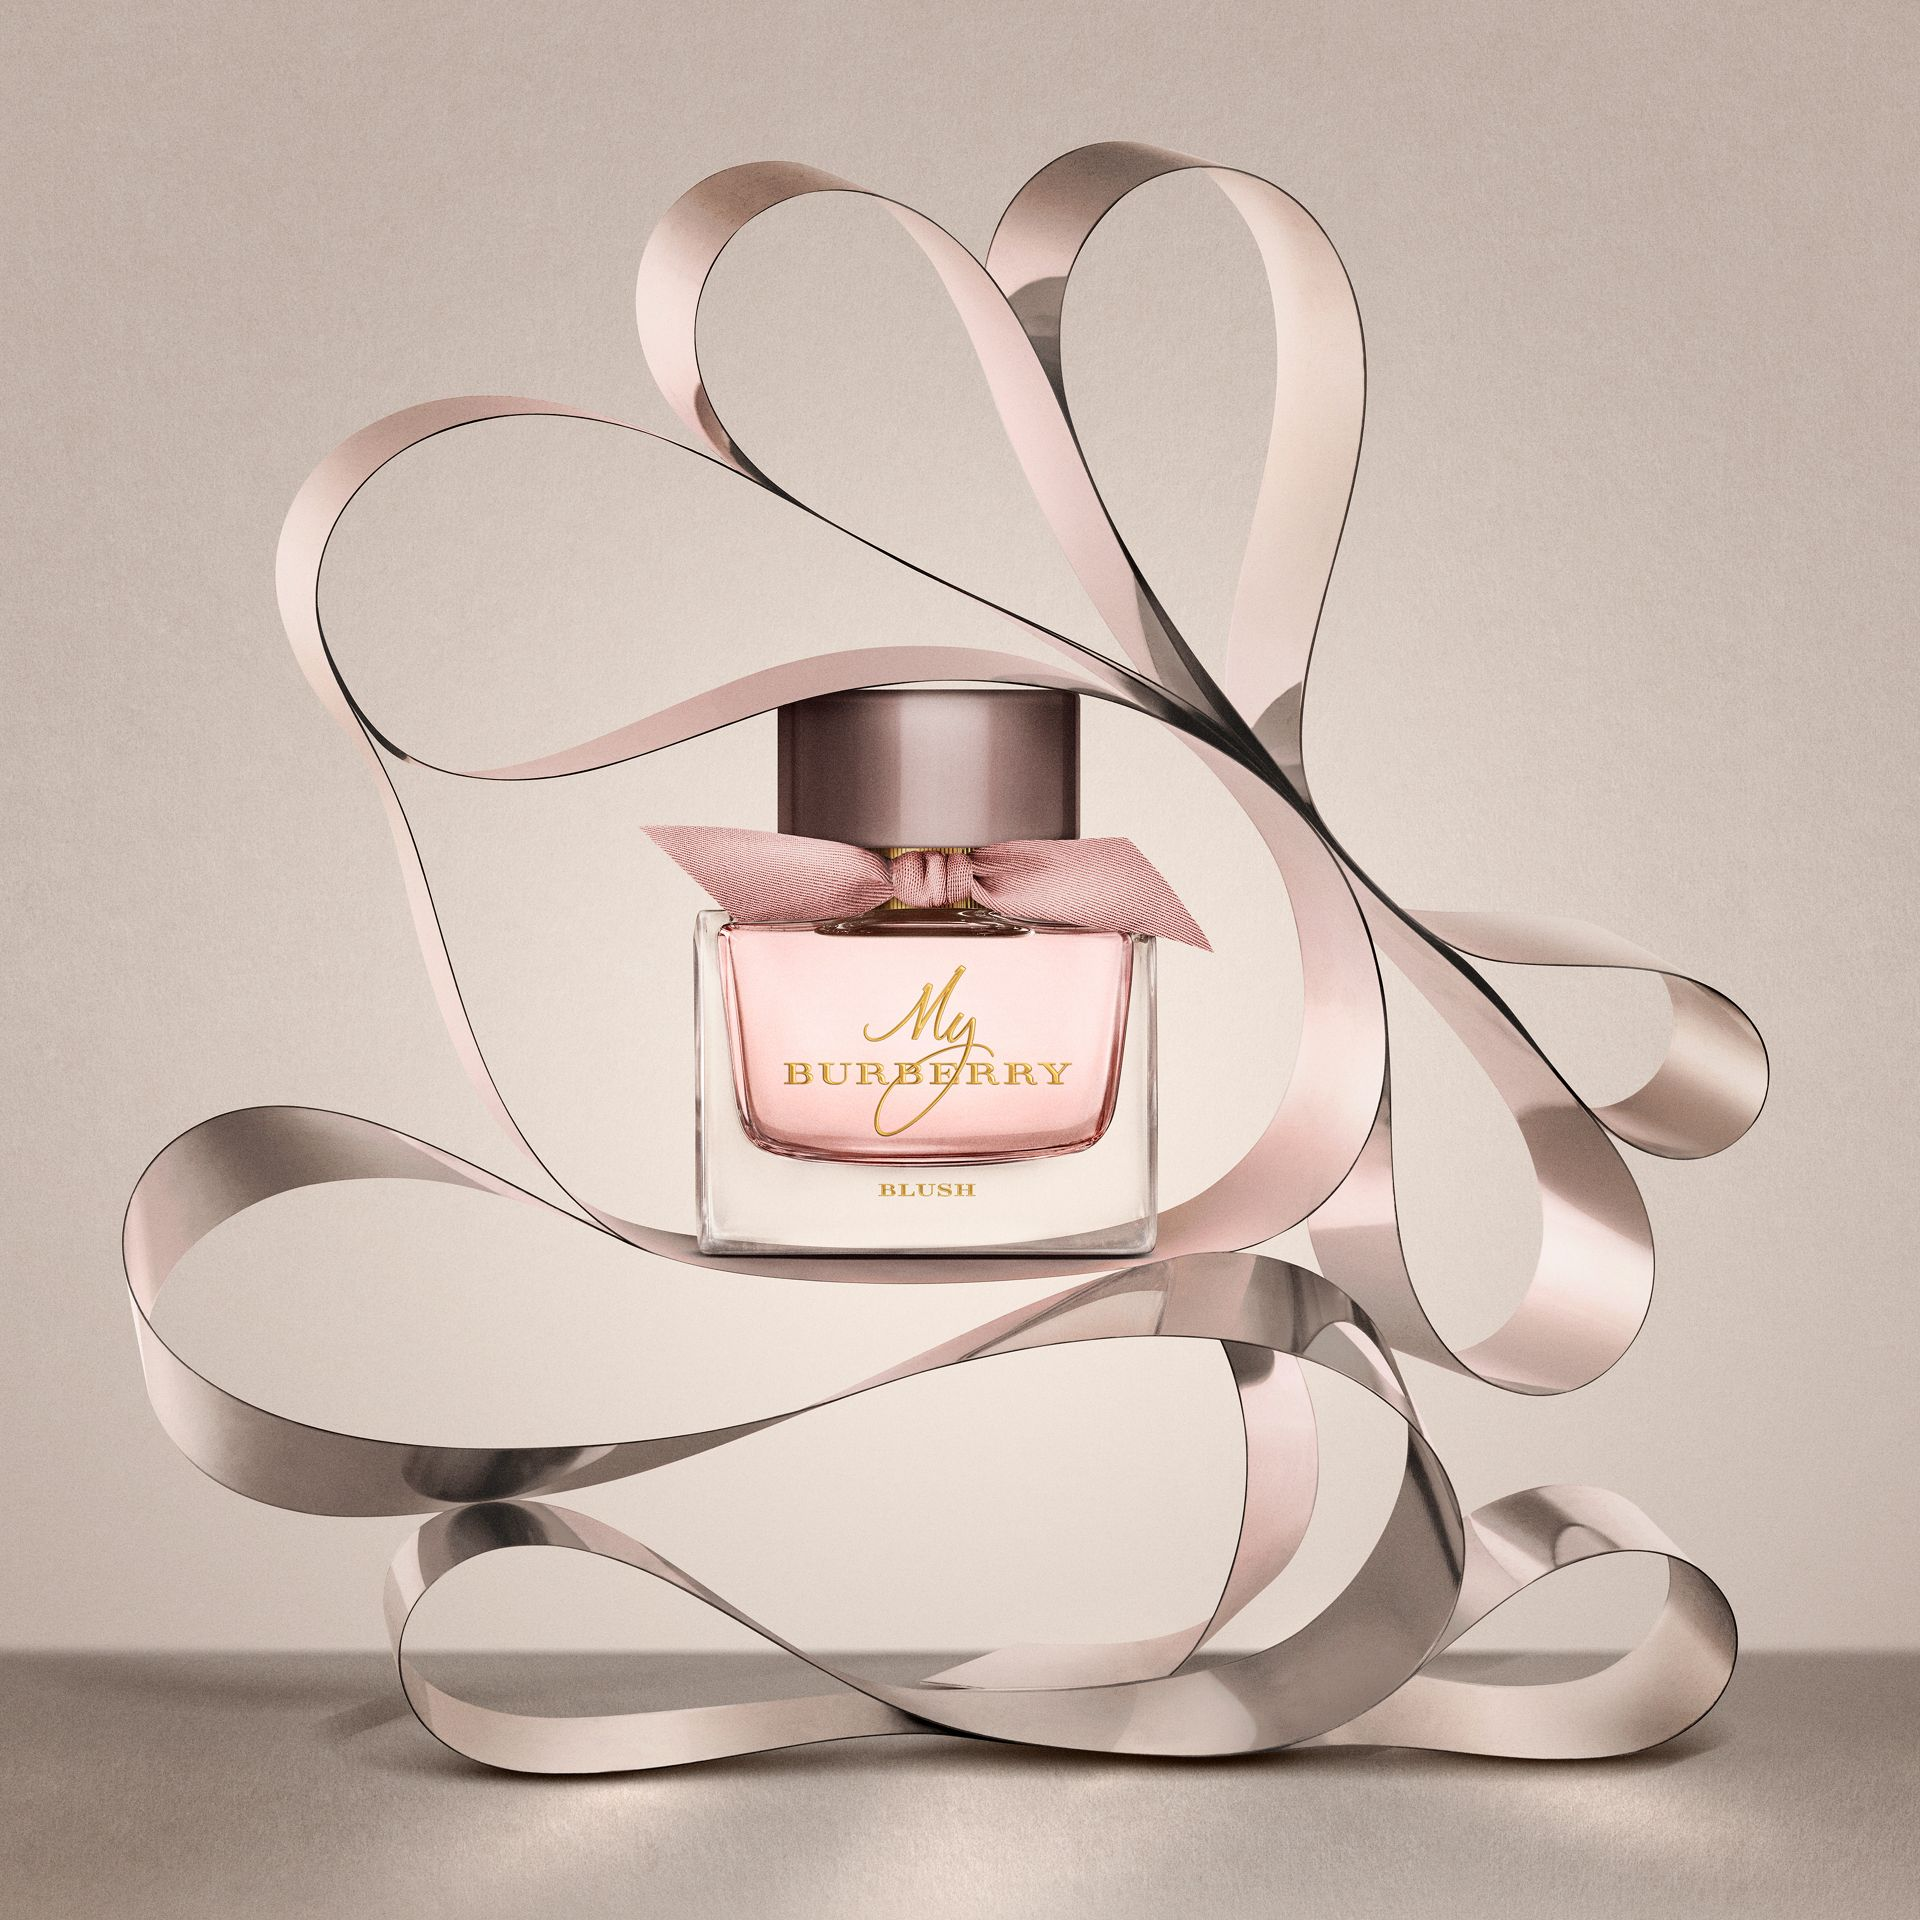 My Burberry Blush Eau de Parfum Festive Blush Look Set in No Colour - Women | Burberry - gallery image 1